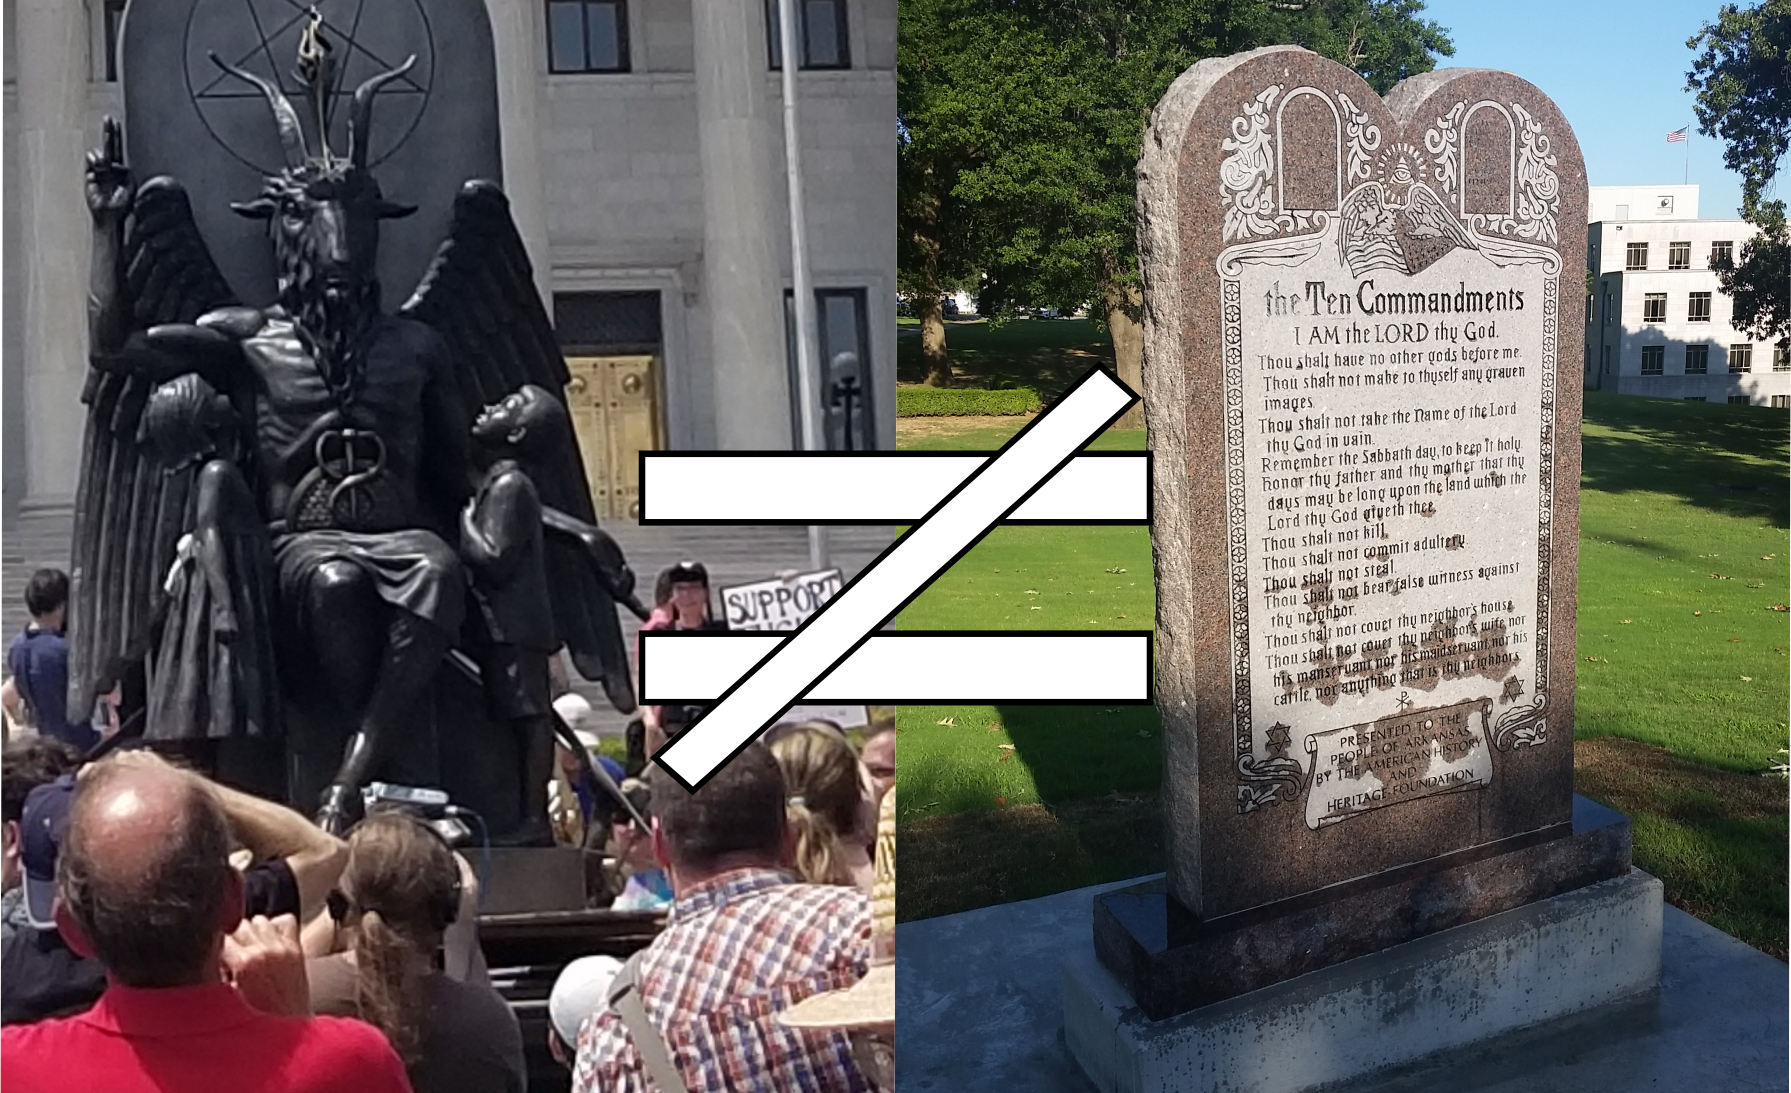 No Comparison Between Ten Commandments Monument and Baphomet Statue